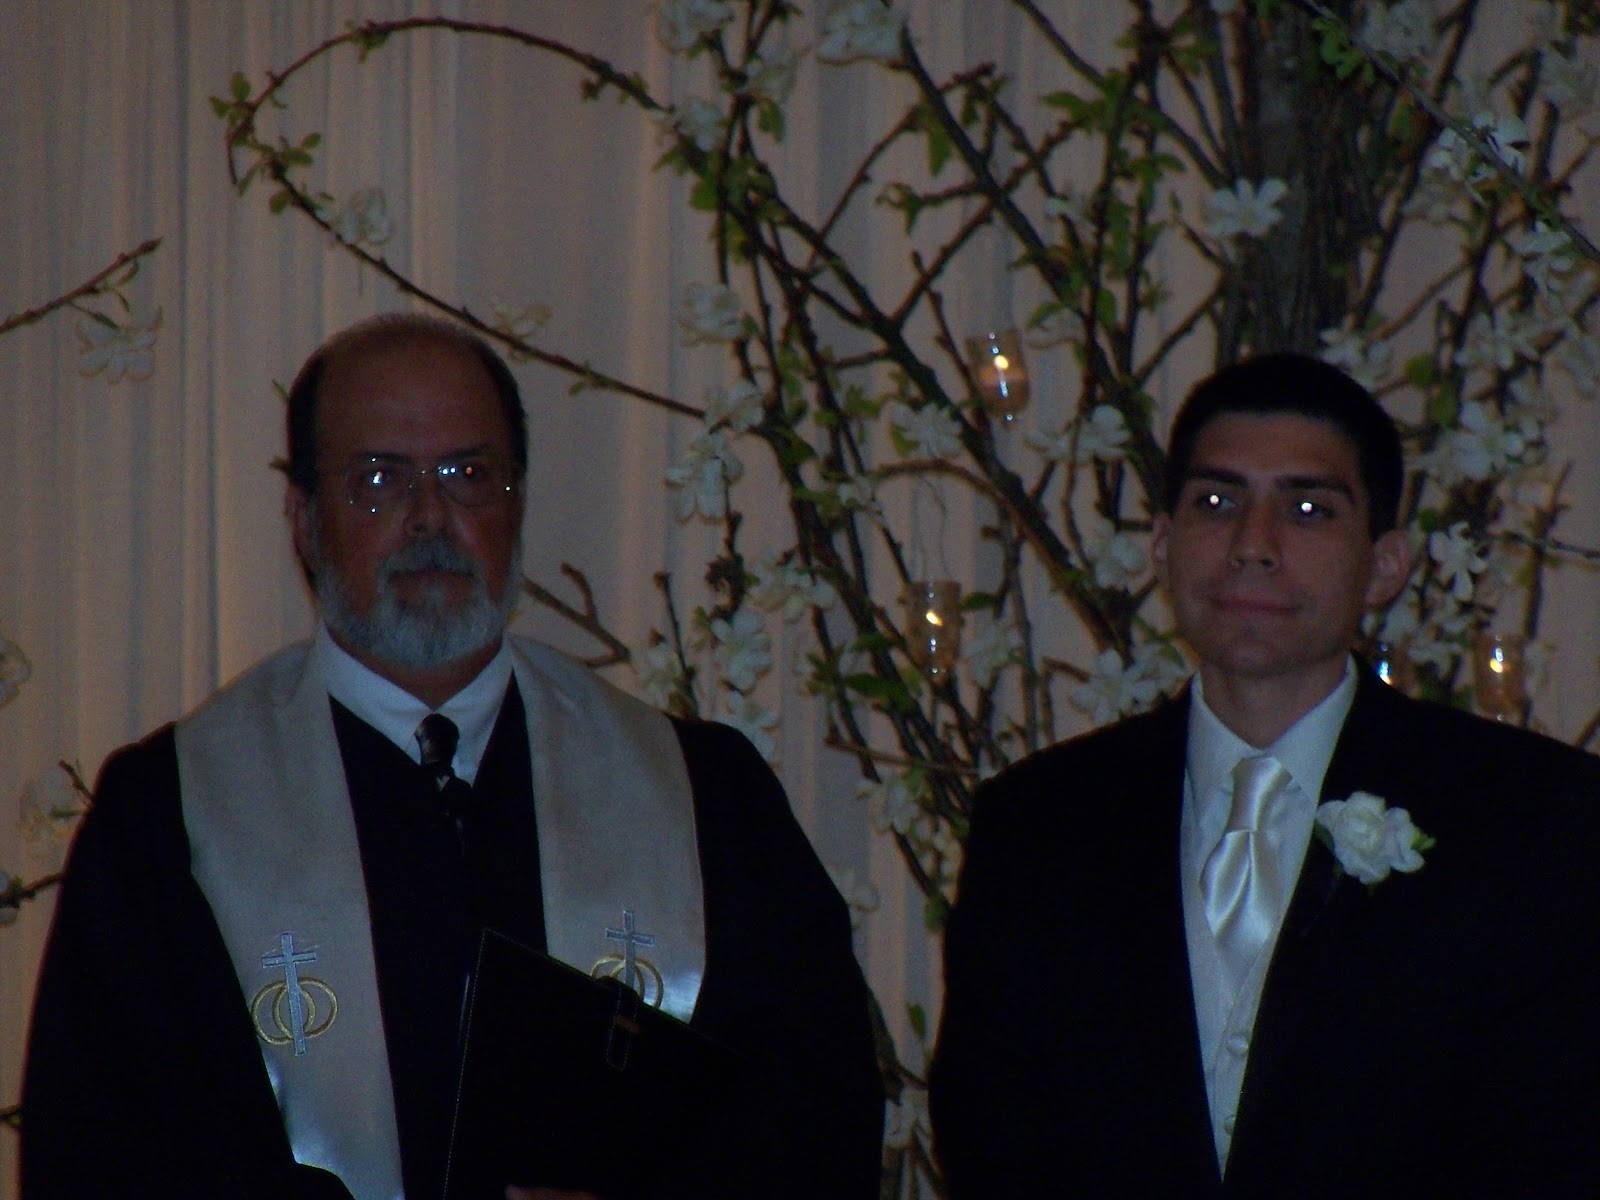 Megan Neal and Mark Suarez wedding - 100_8288.JPG